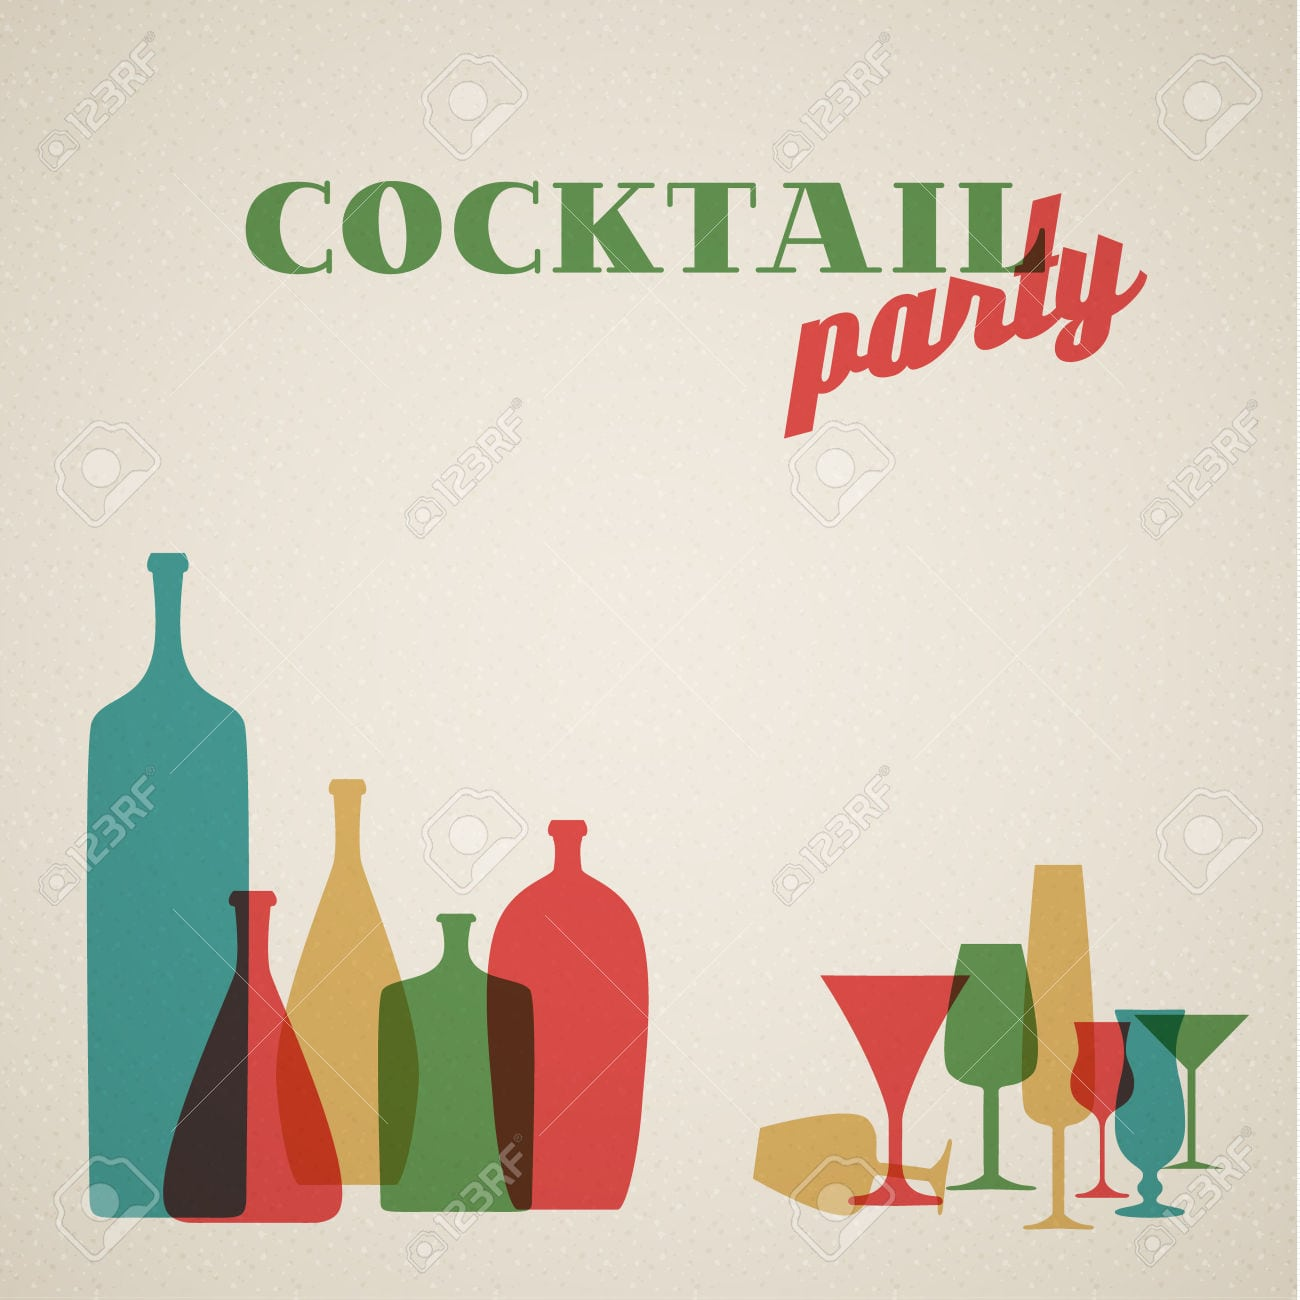 Retro Cocktail Party Invitation Card With Glasses And Bottles